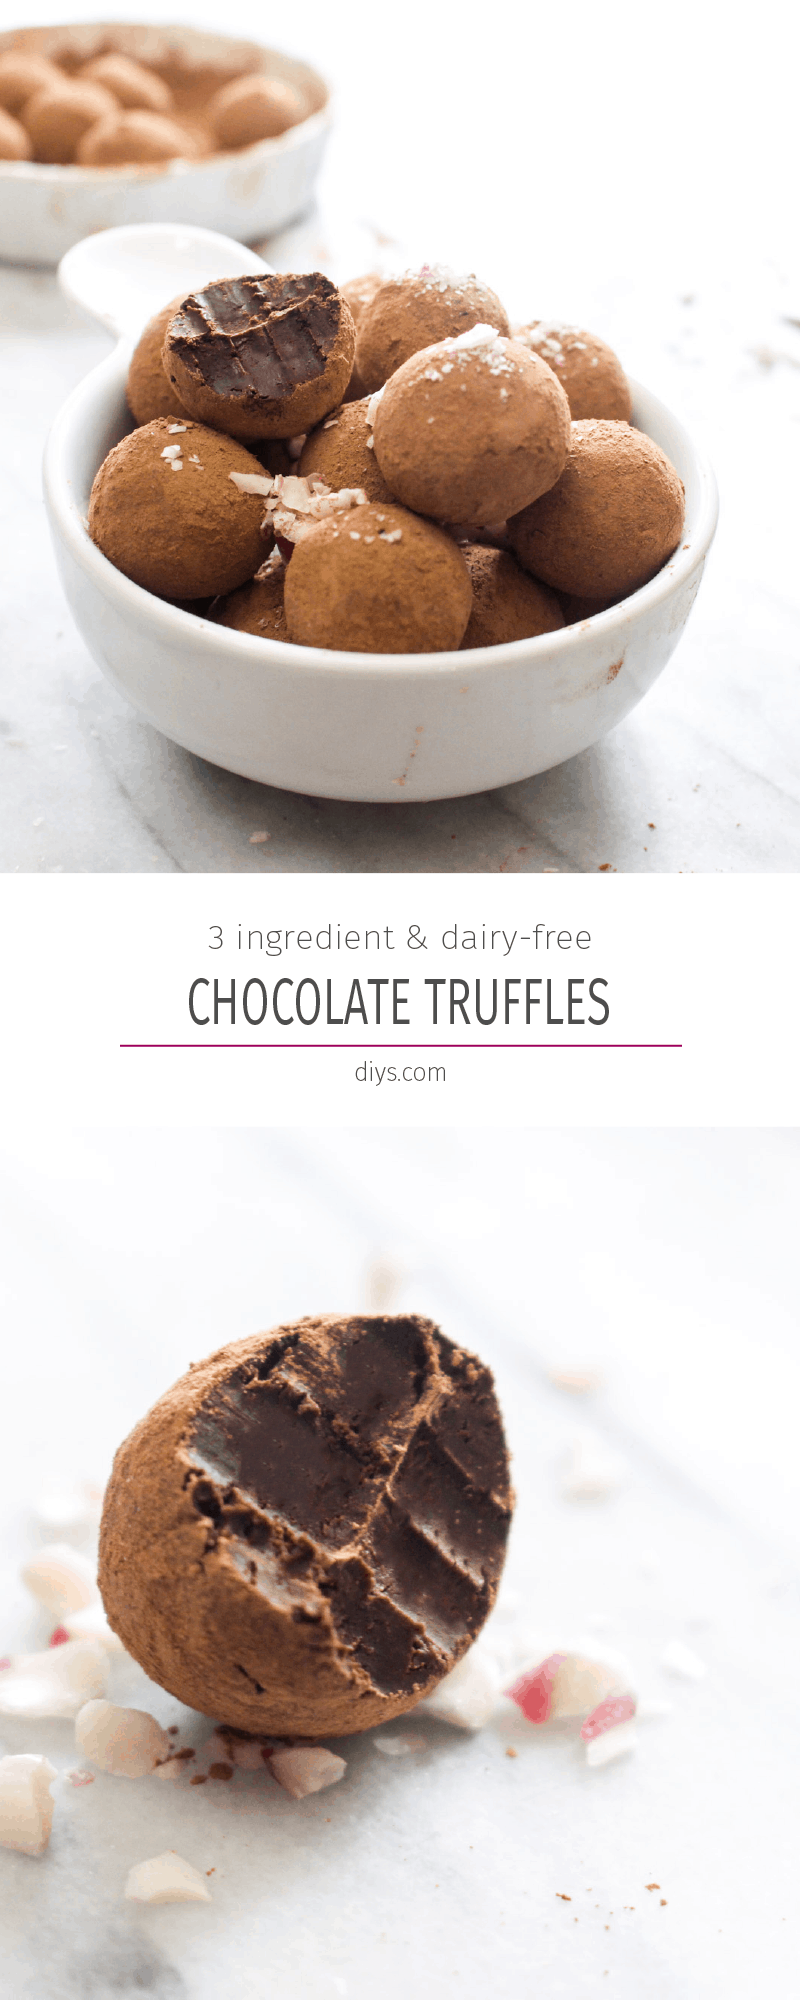 Chocolate truffles top